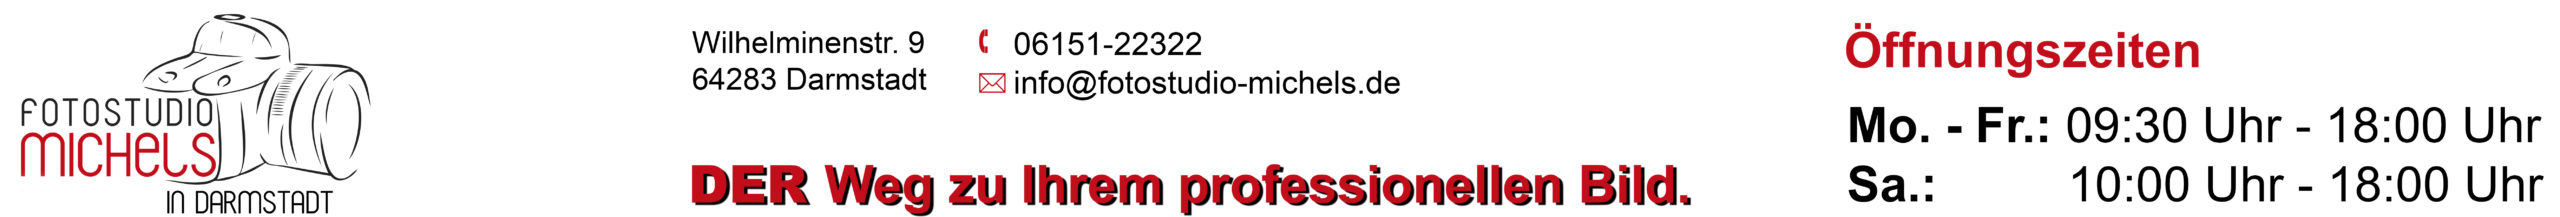 Fotostudio Michels